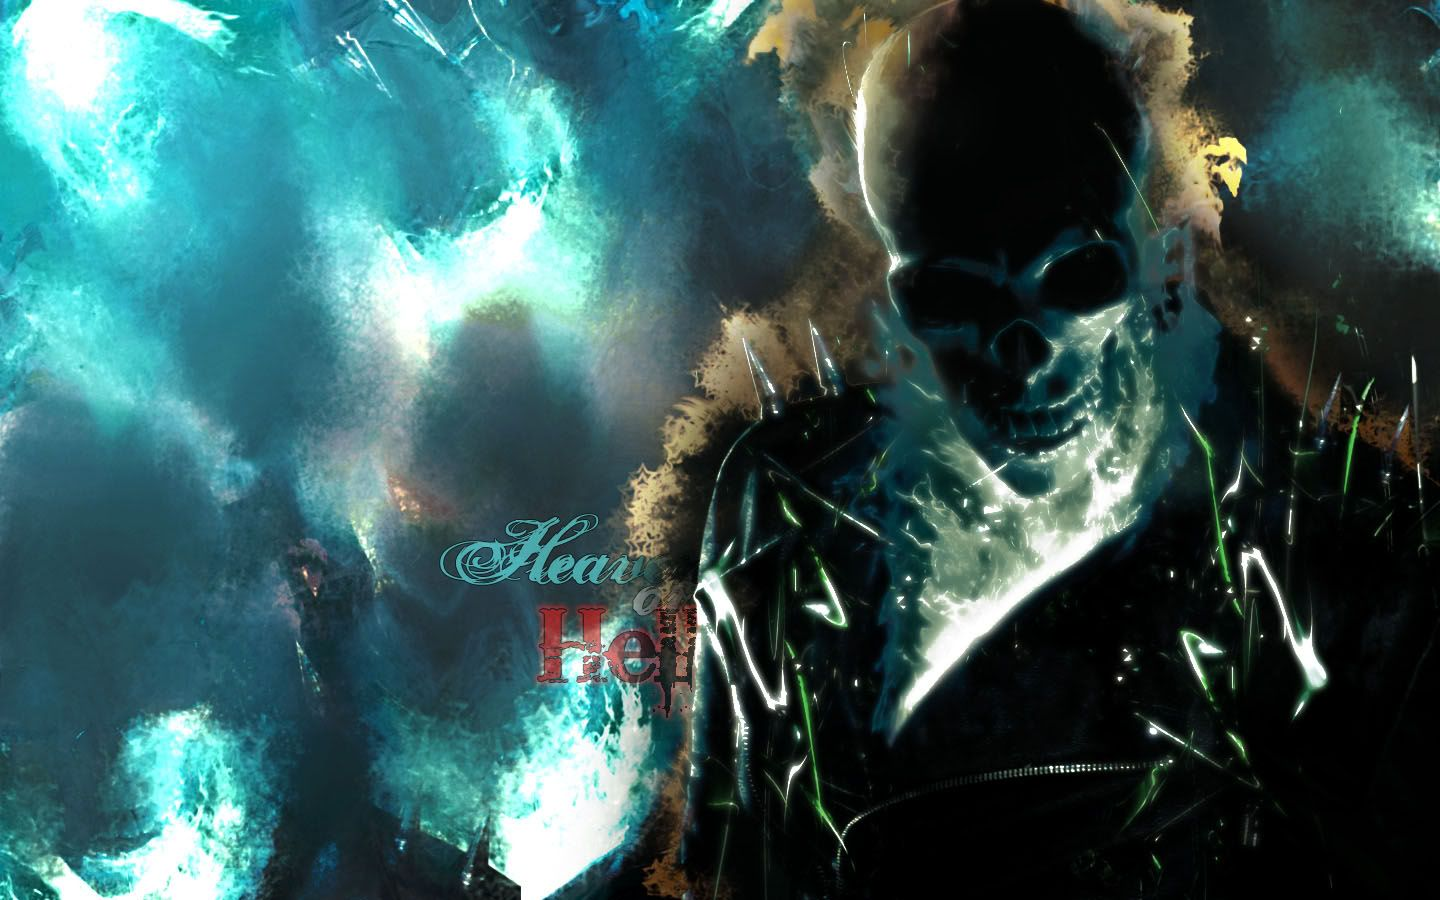 Blue Ghost Rider ghost rider backgrounds   wallpaper cave 1440x900